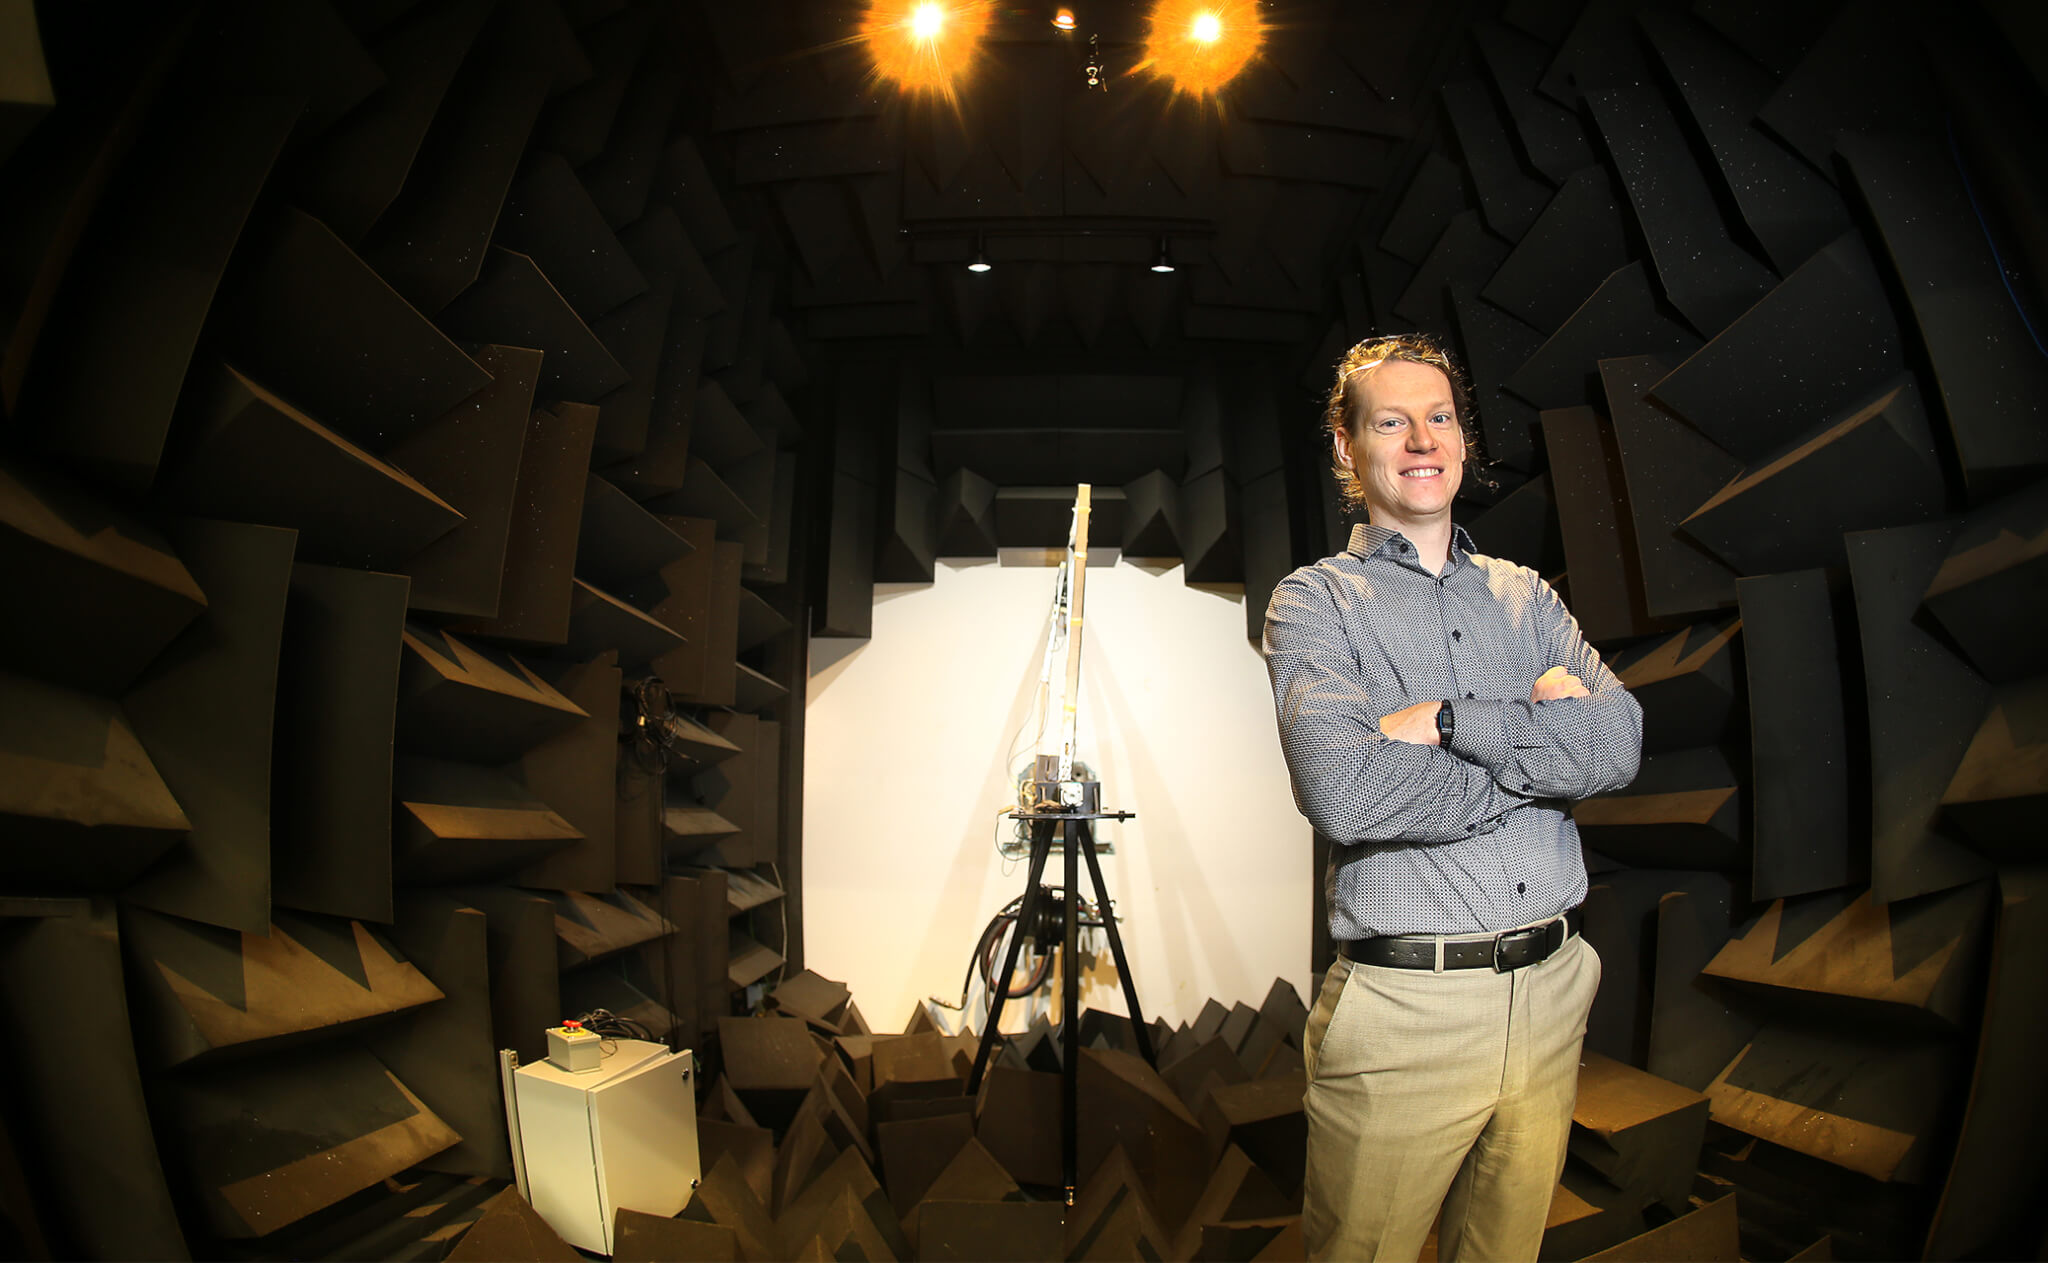 Paul standing among foam in the sound chamber